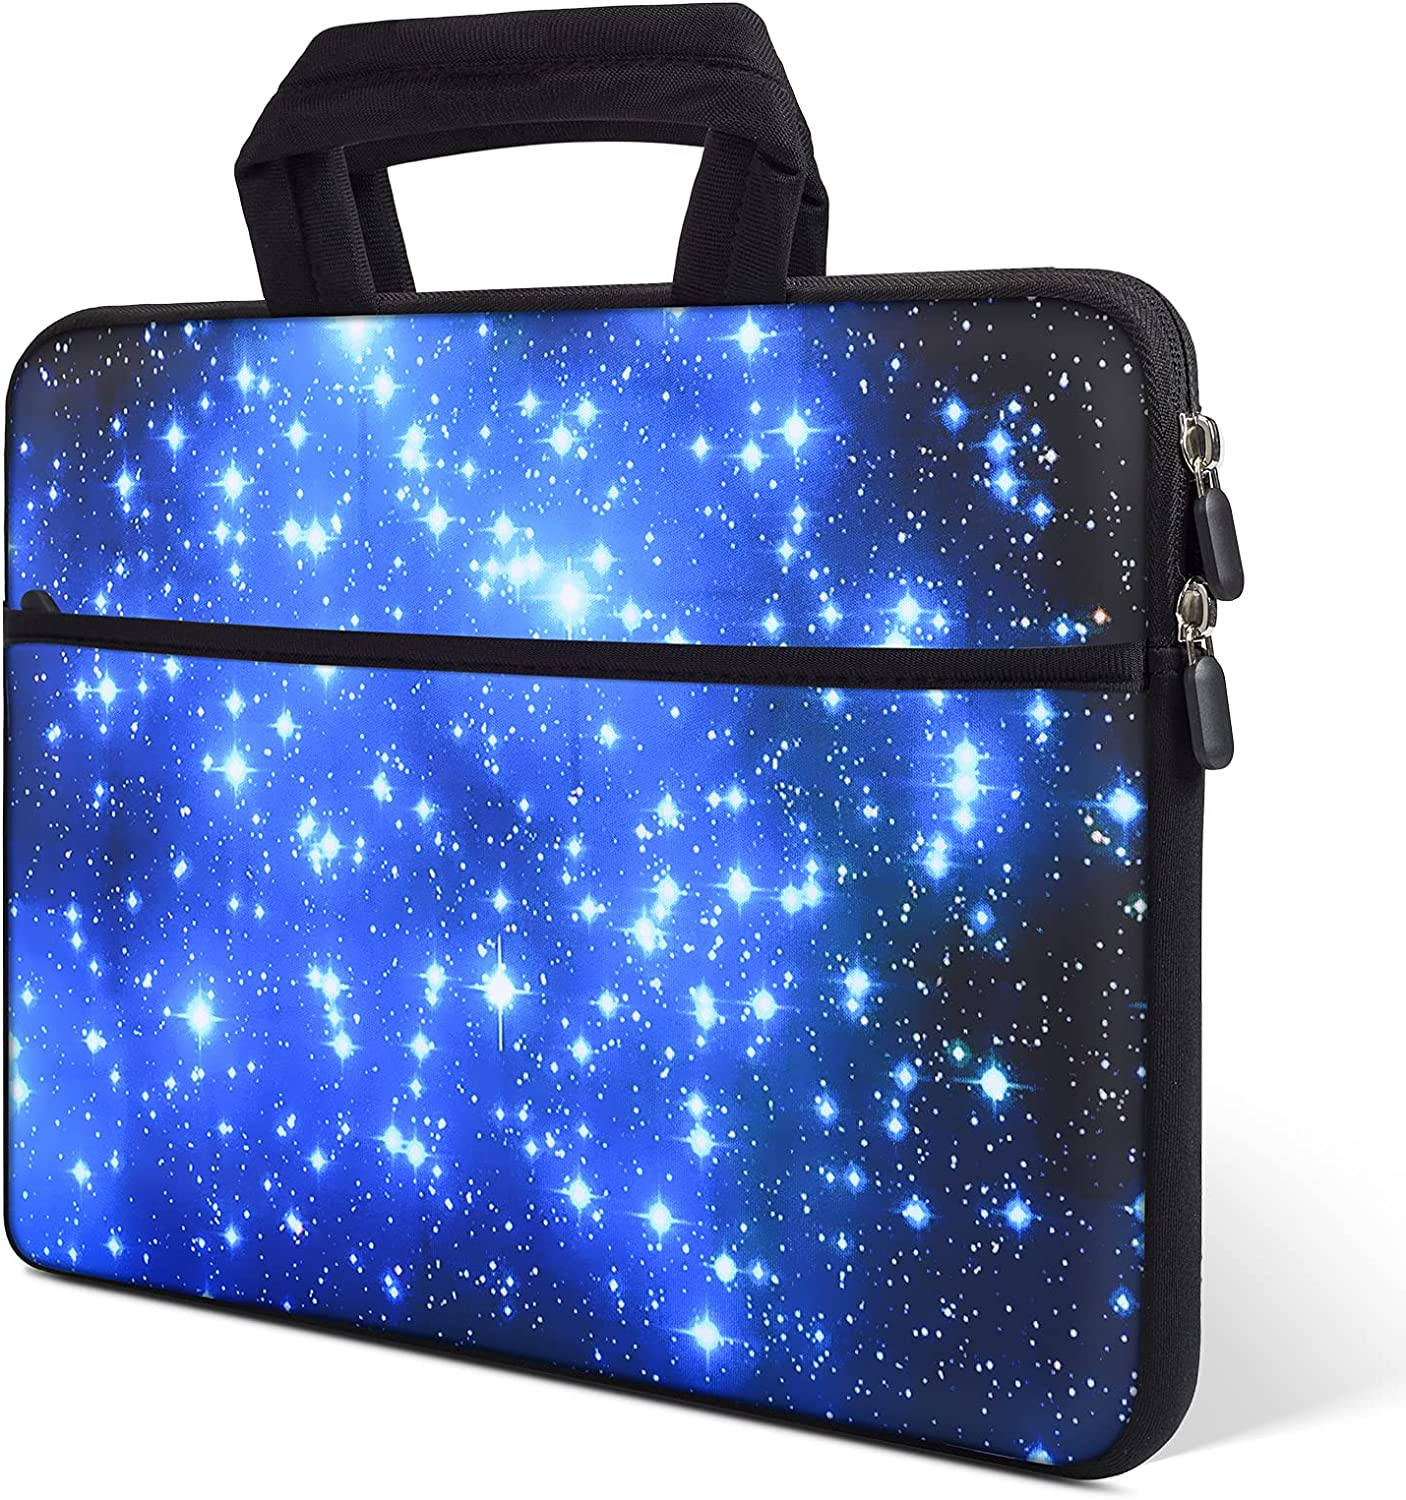 iKammo 13.3-14 Inch Laptop Case Carrying Bag Neoprene Chromebook Briefcase Compatible with Acer Chromebook 14 CB3-431 CP5-471/ASUS ZenBook 13/Dell Inspiron 13 7000/HP Stream 14 inch(Blue Star)